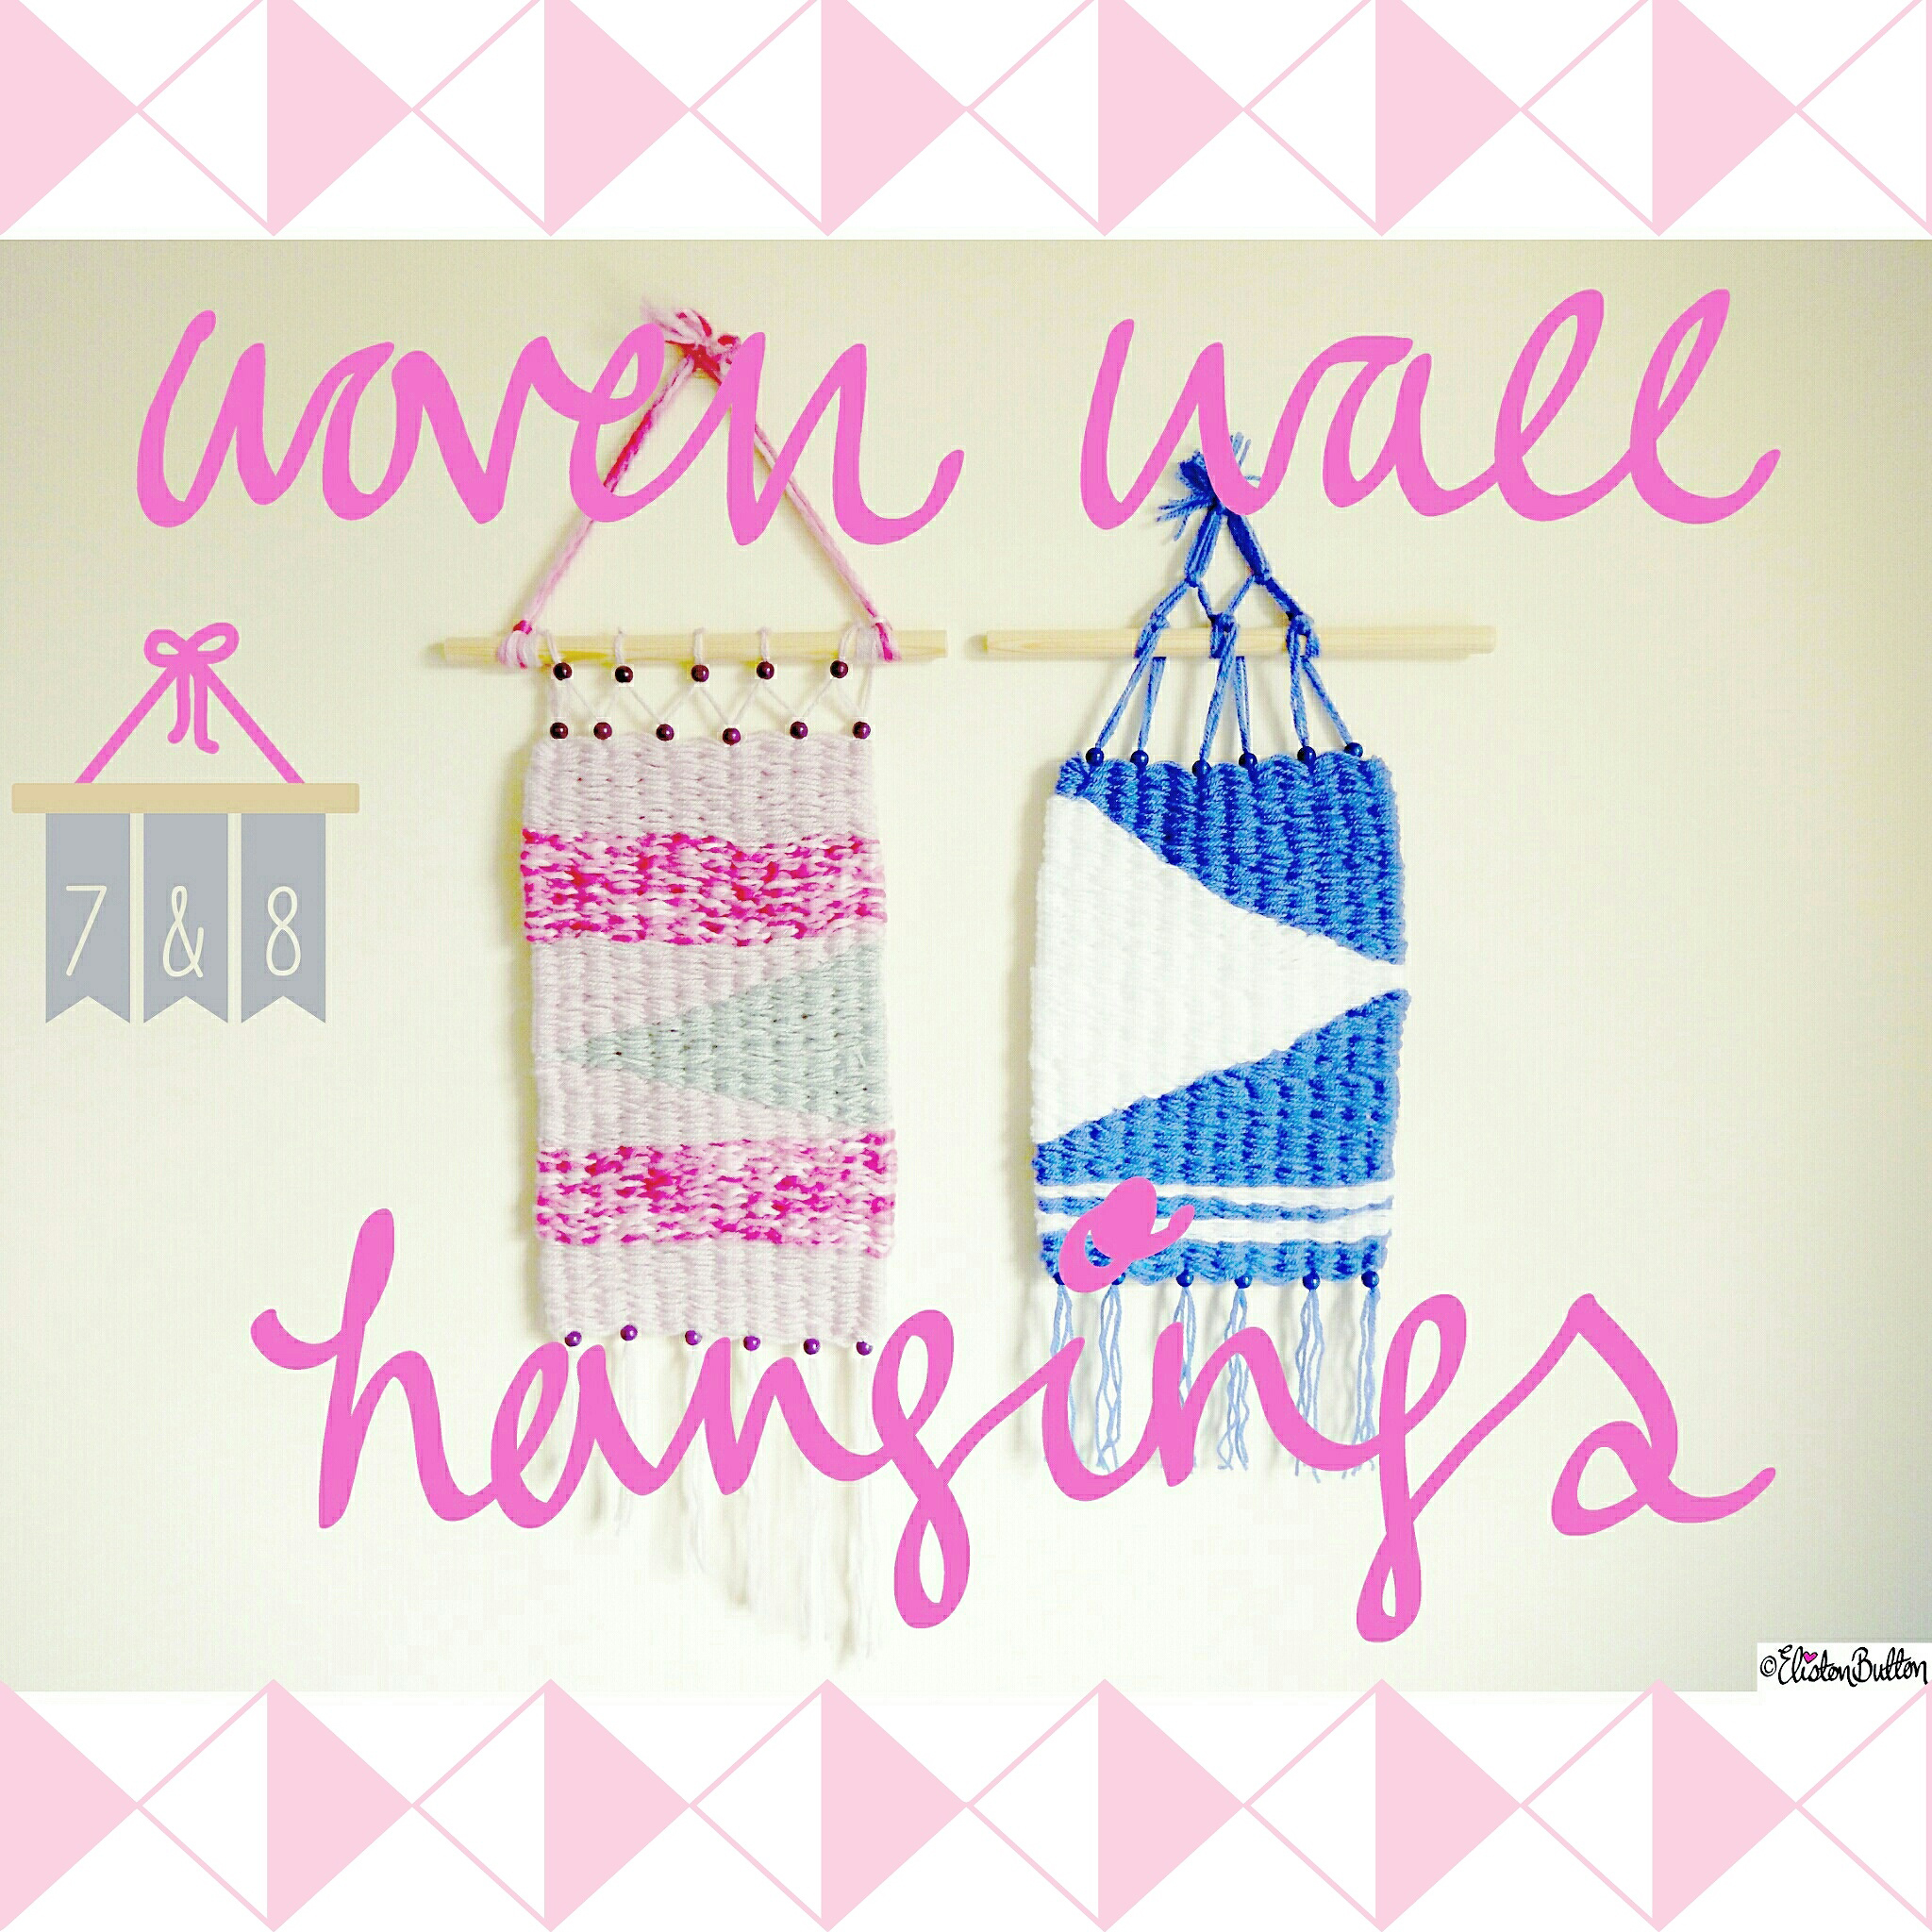 Woven Wall Hangings - Around Here...March 2015 at www.elistonbutton.com - Eliston Button - That Crafty Kid – Art, Design, Craft & Adventure.